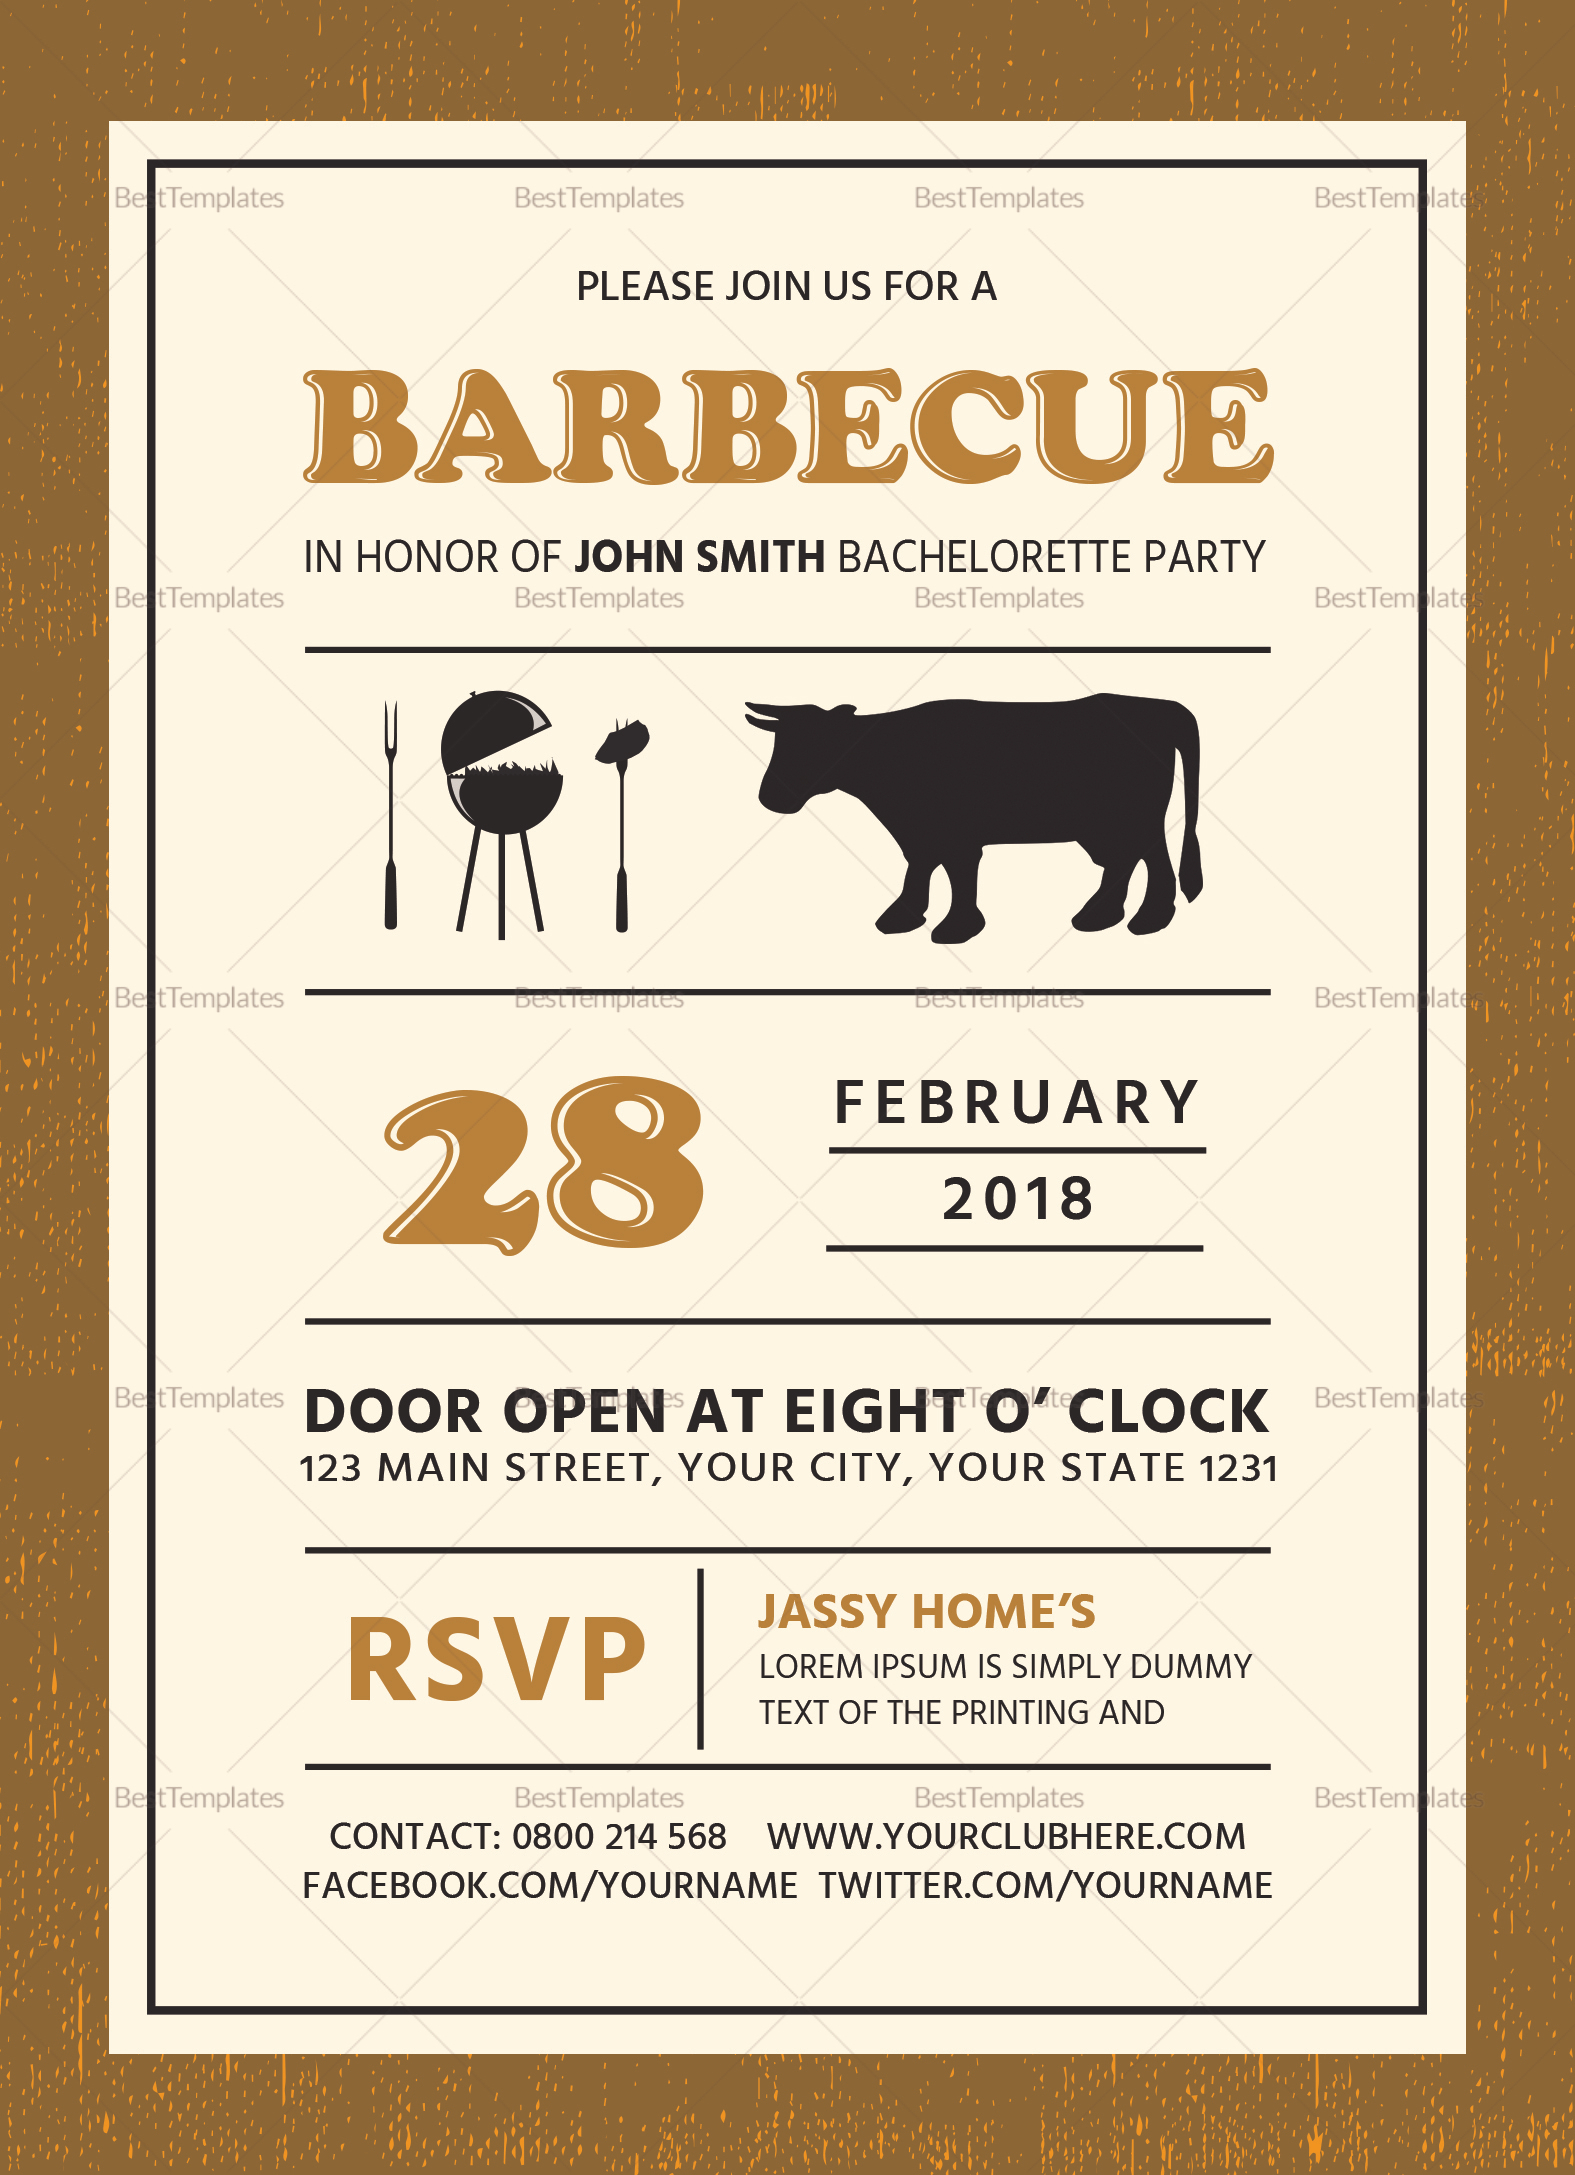 Bachelorette BBQ Party Invitation Card Design Template